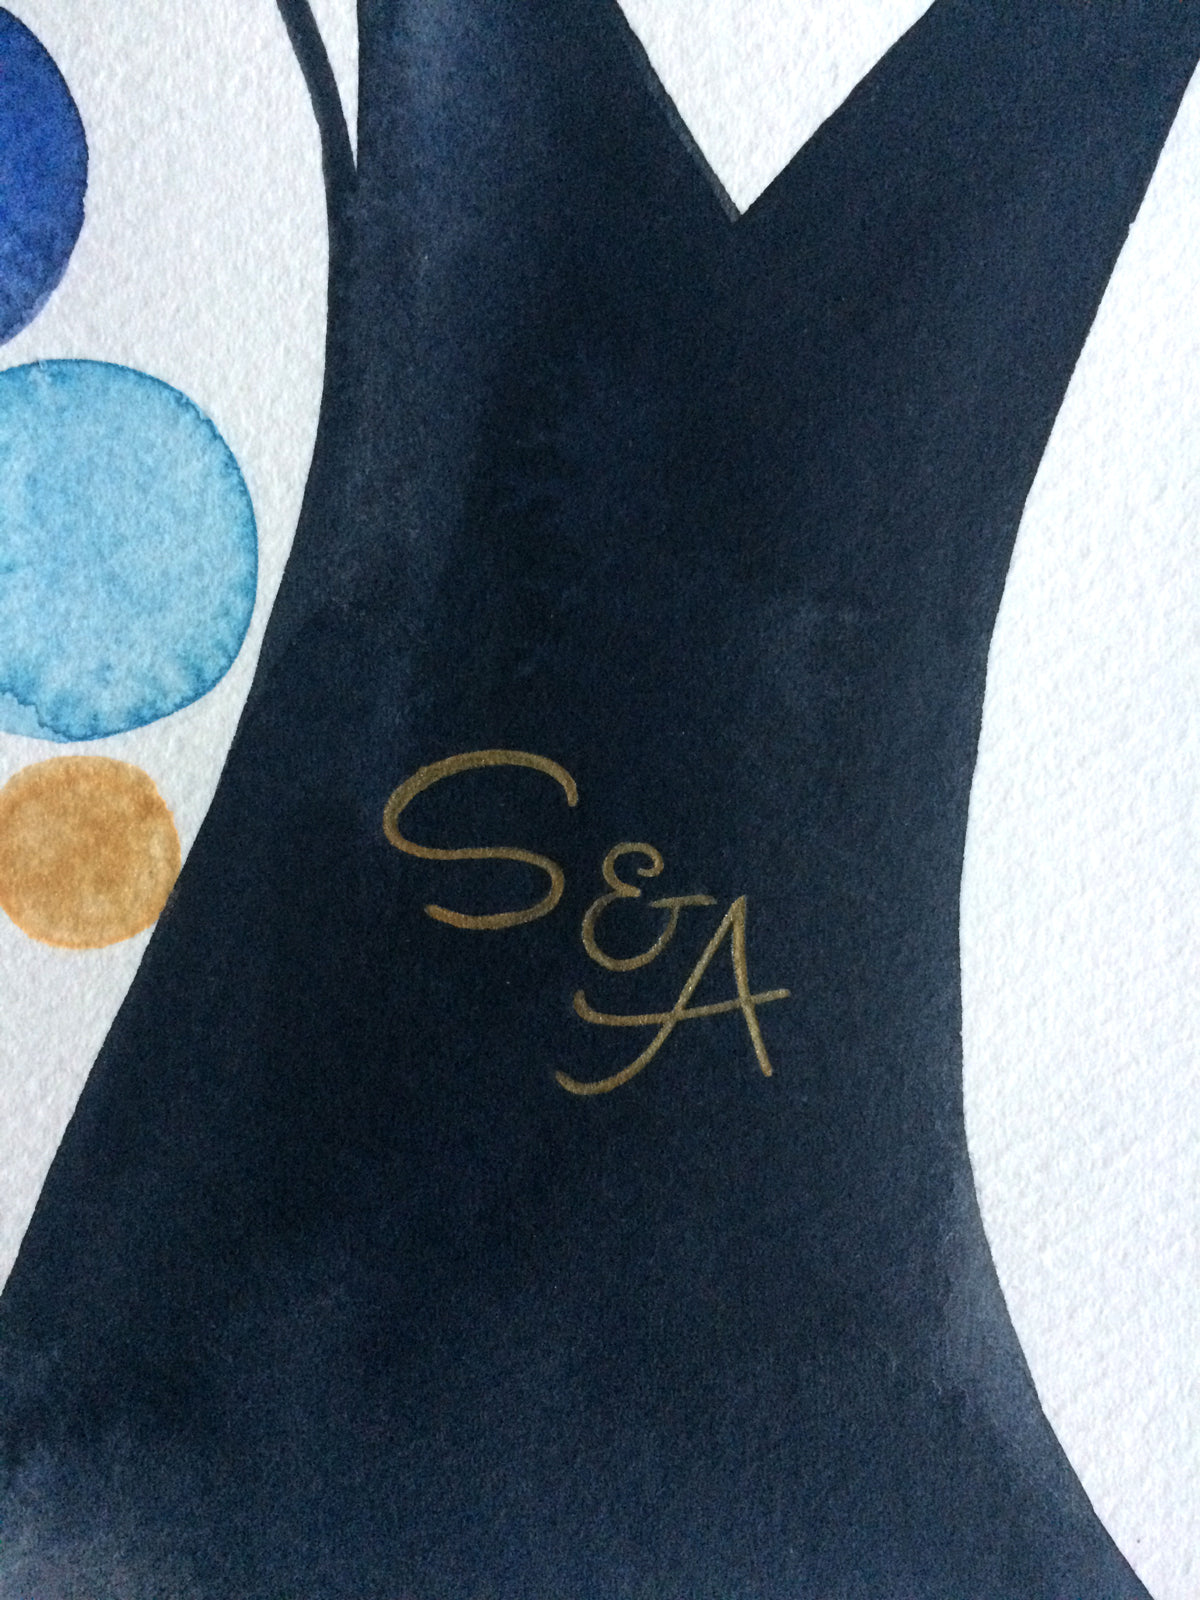 S & A wedding monogram in gold painting